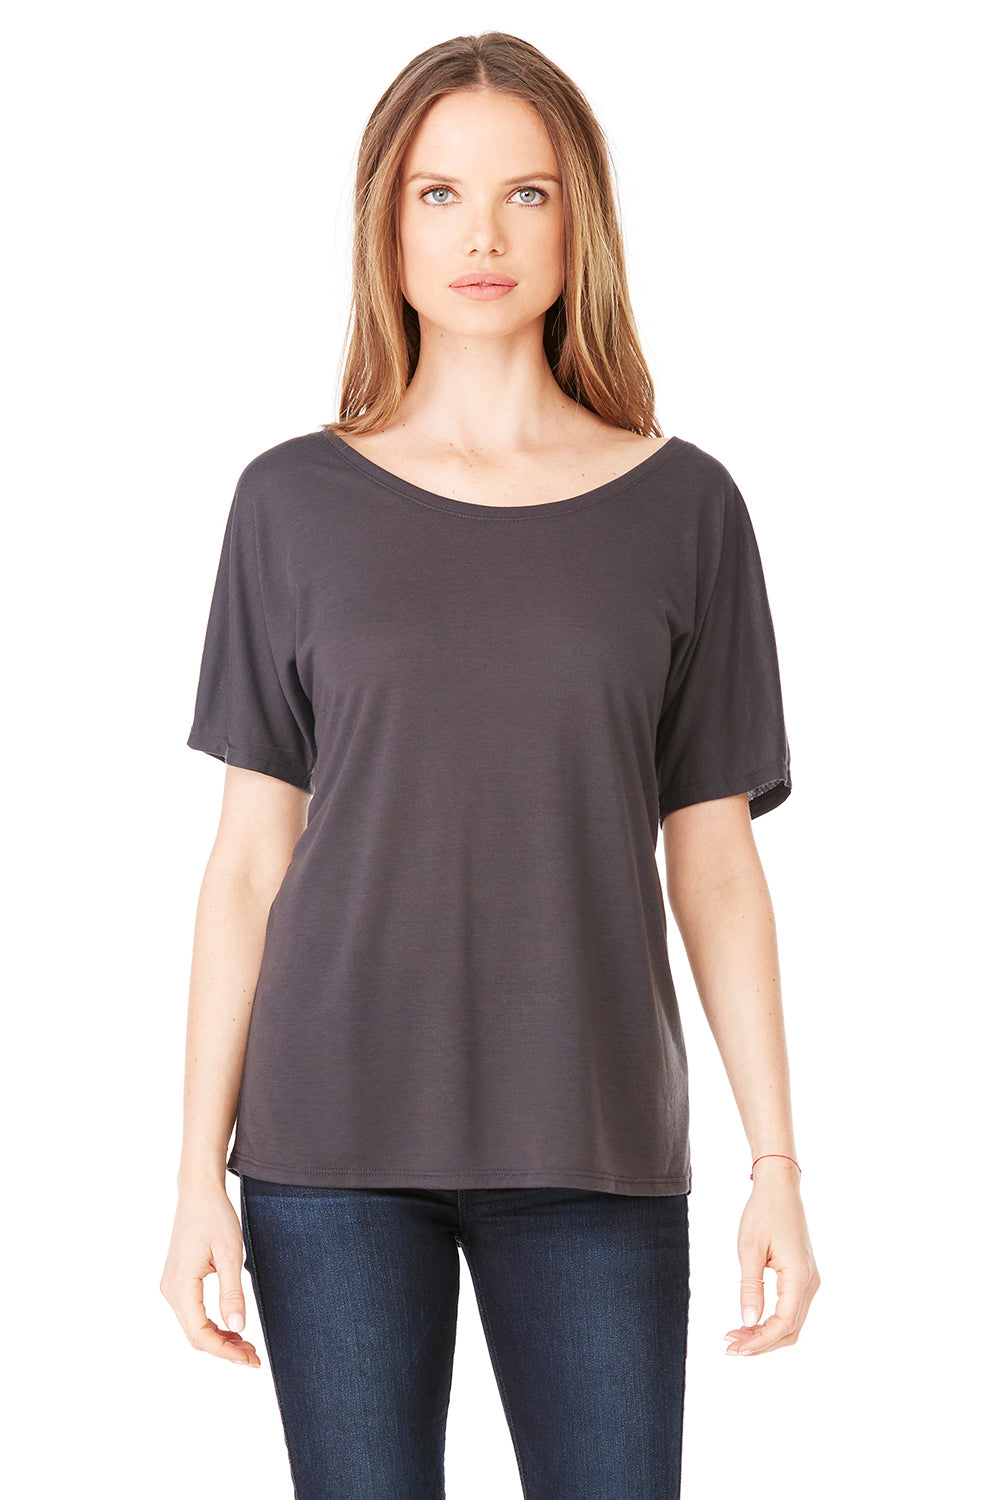 Bella + Canvas 8816 Womens Slouchy Short Sleeve Wide Neck T-Shirt Dark Grey Front